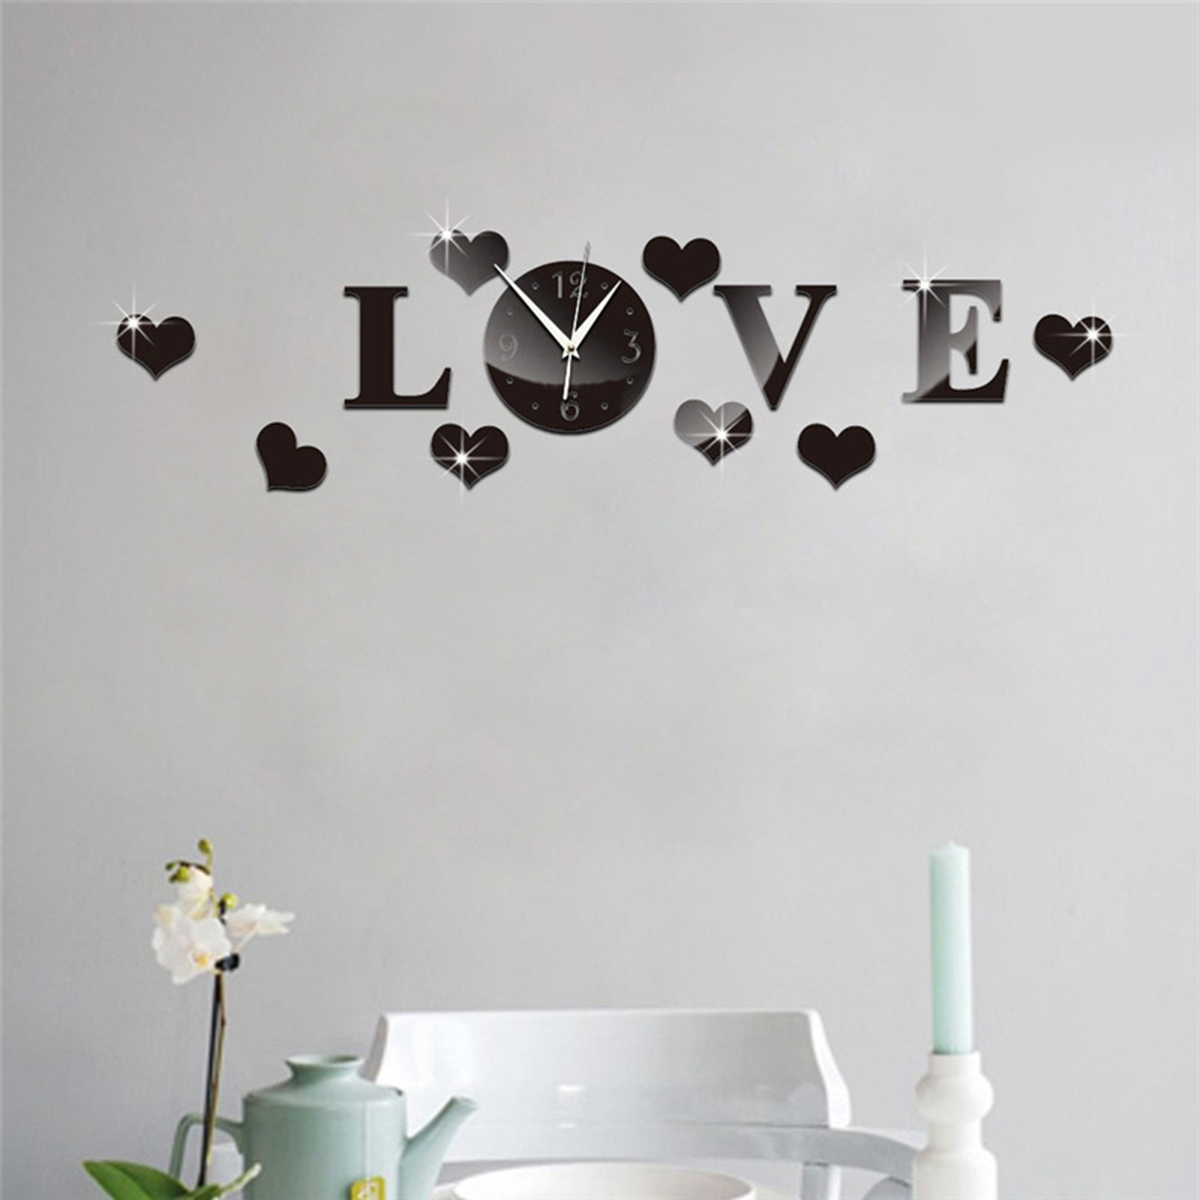 Removable-Mirror-Decal-Art-Mural-Wall-Stickers-Home-Decor-DIY-Room-Decoration thumbnail 14